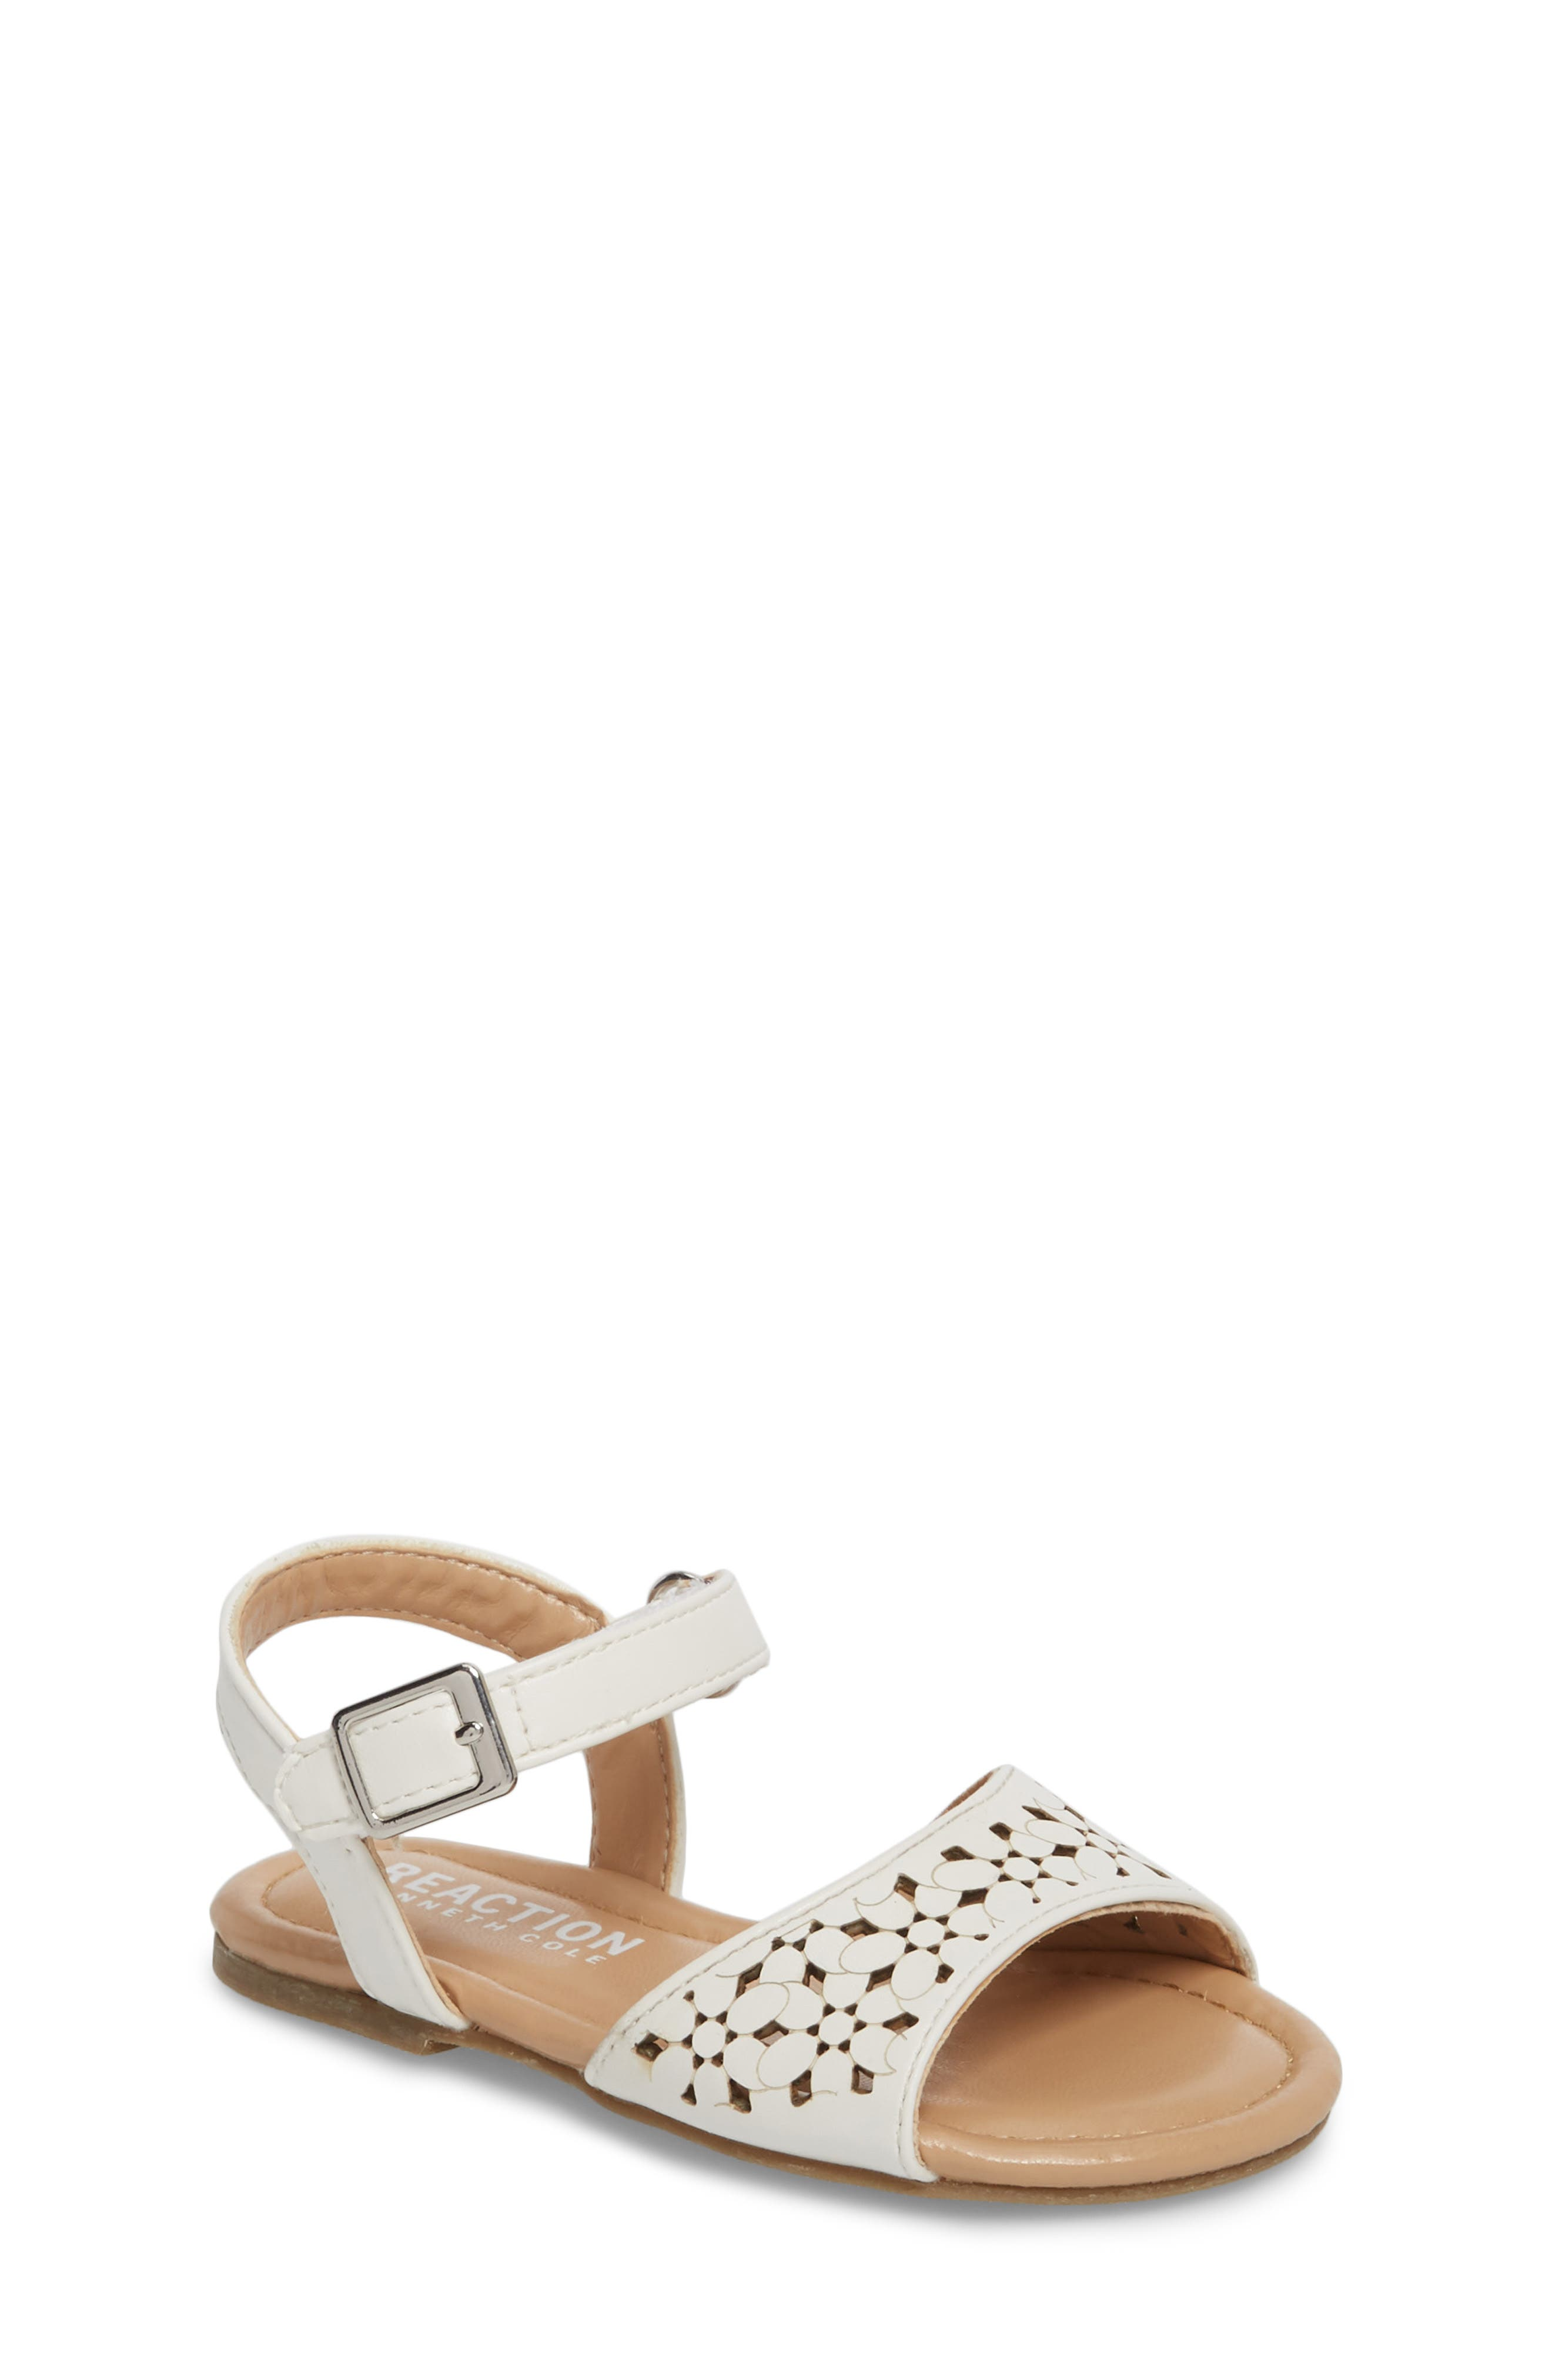 Alternate Image 1 Selected - Kenneth Cole New York Kiera Perforated Sandal (Walker & Toddler)